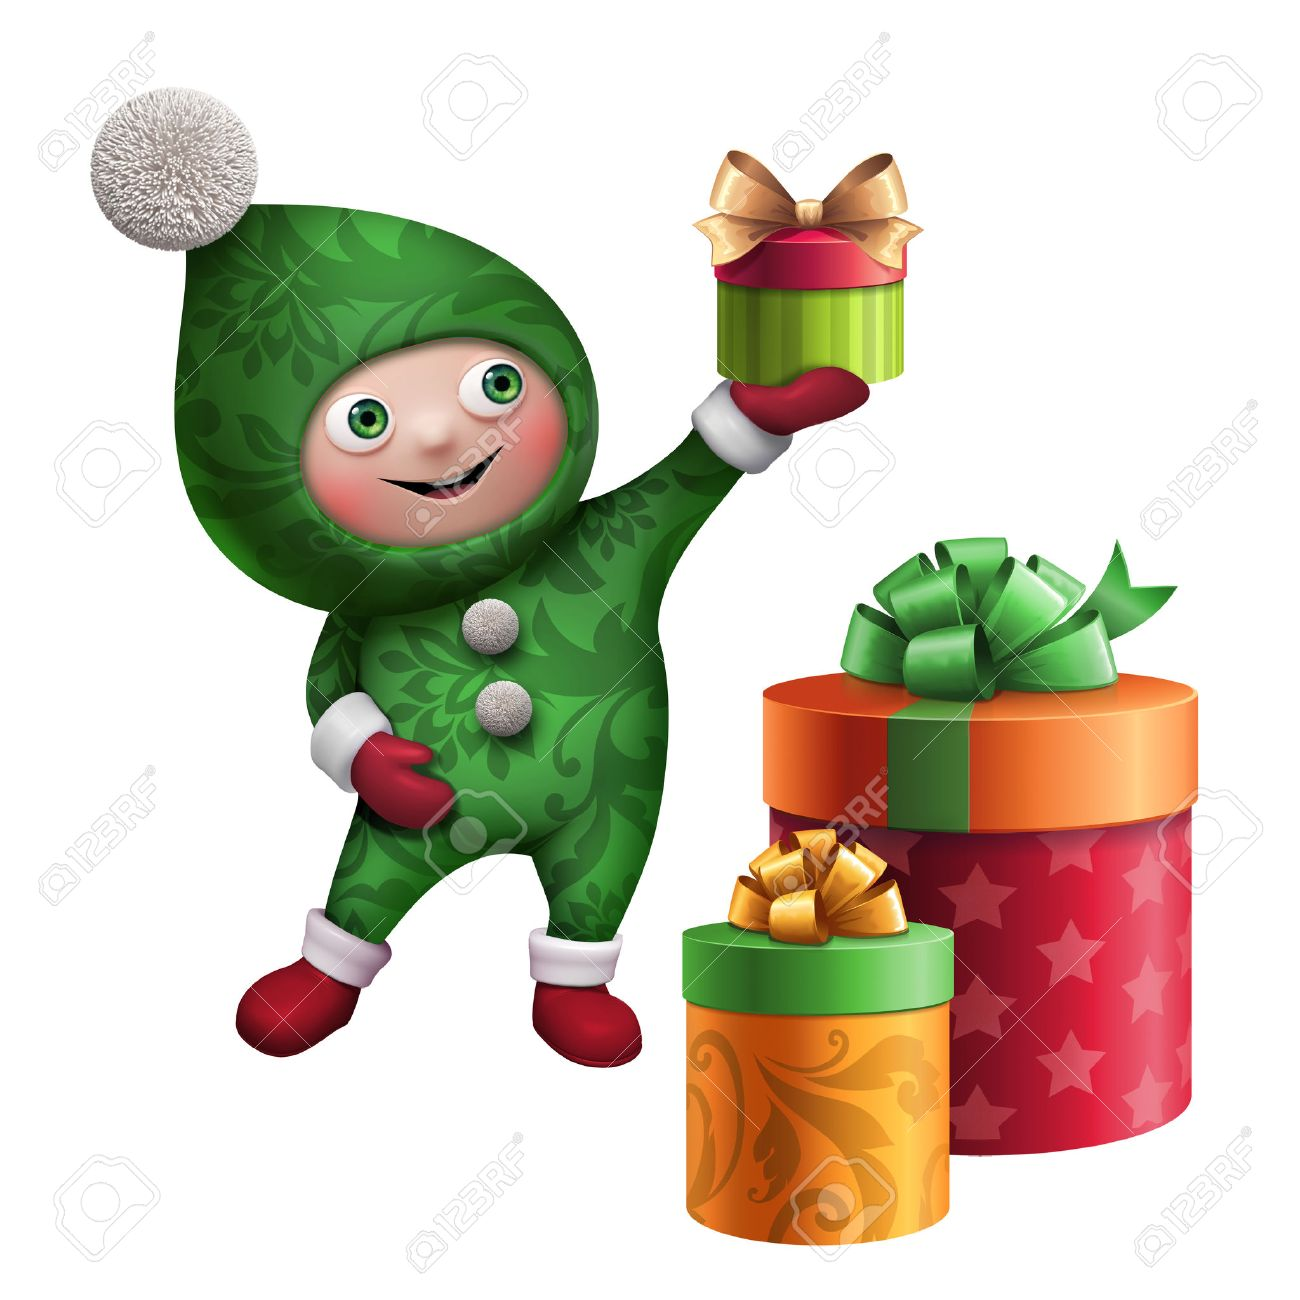 Cute Funny Christmas Elf Cartoon Holding Gift Clip Art Stock Photo ...